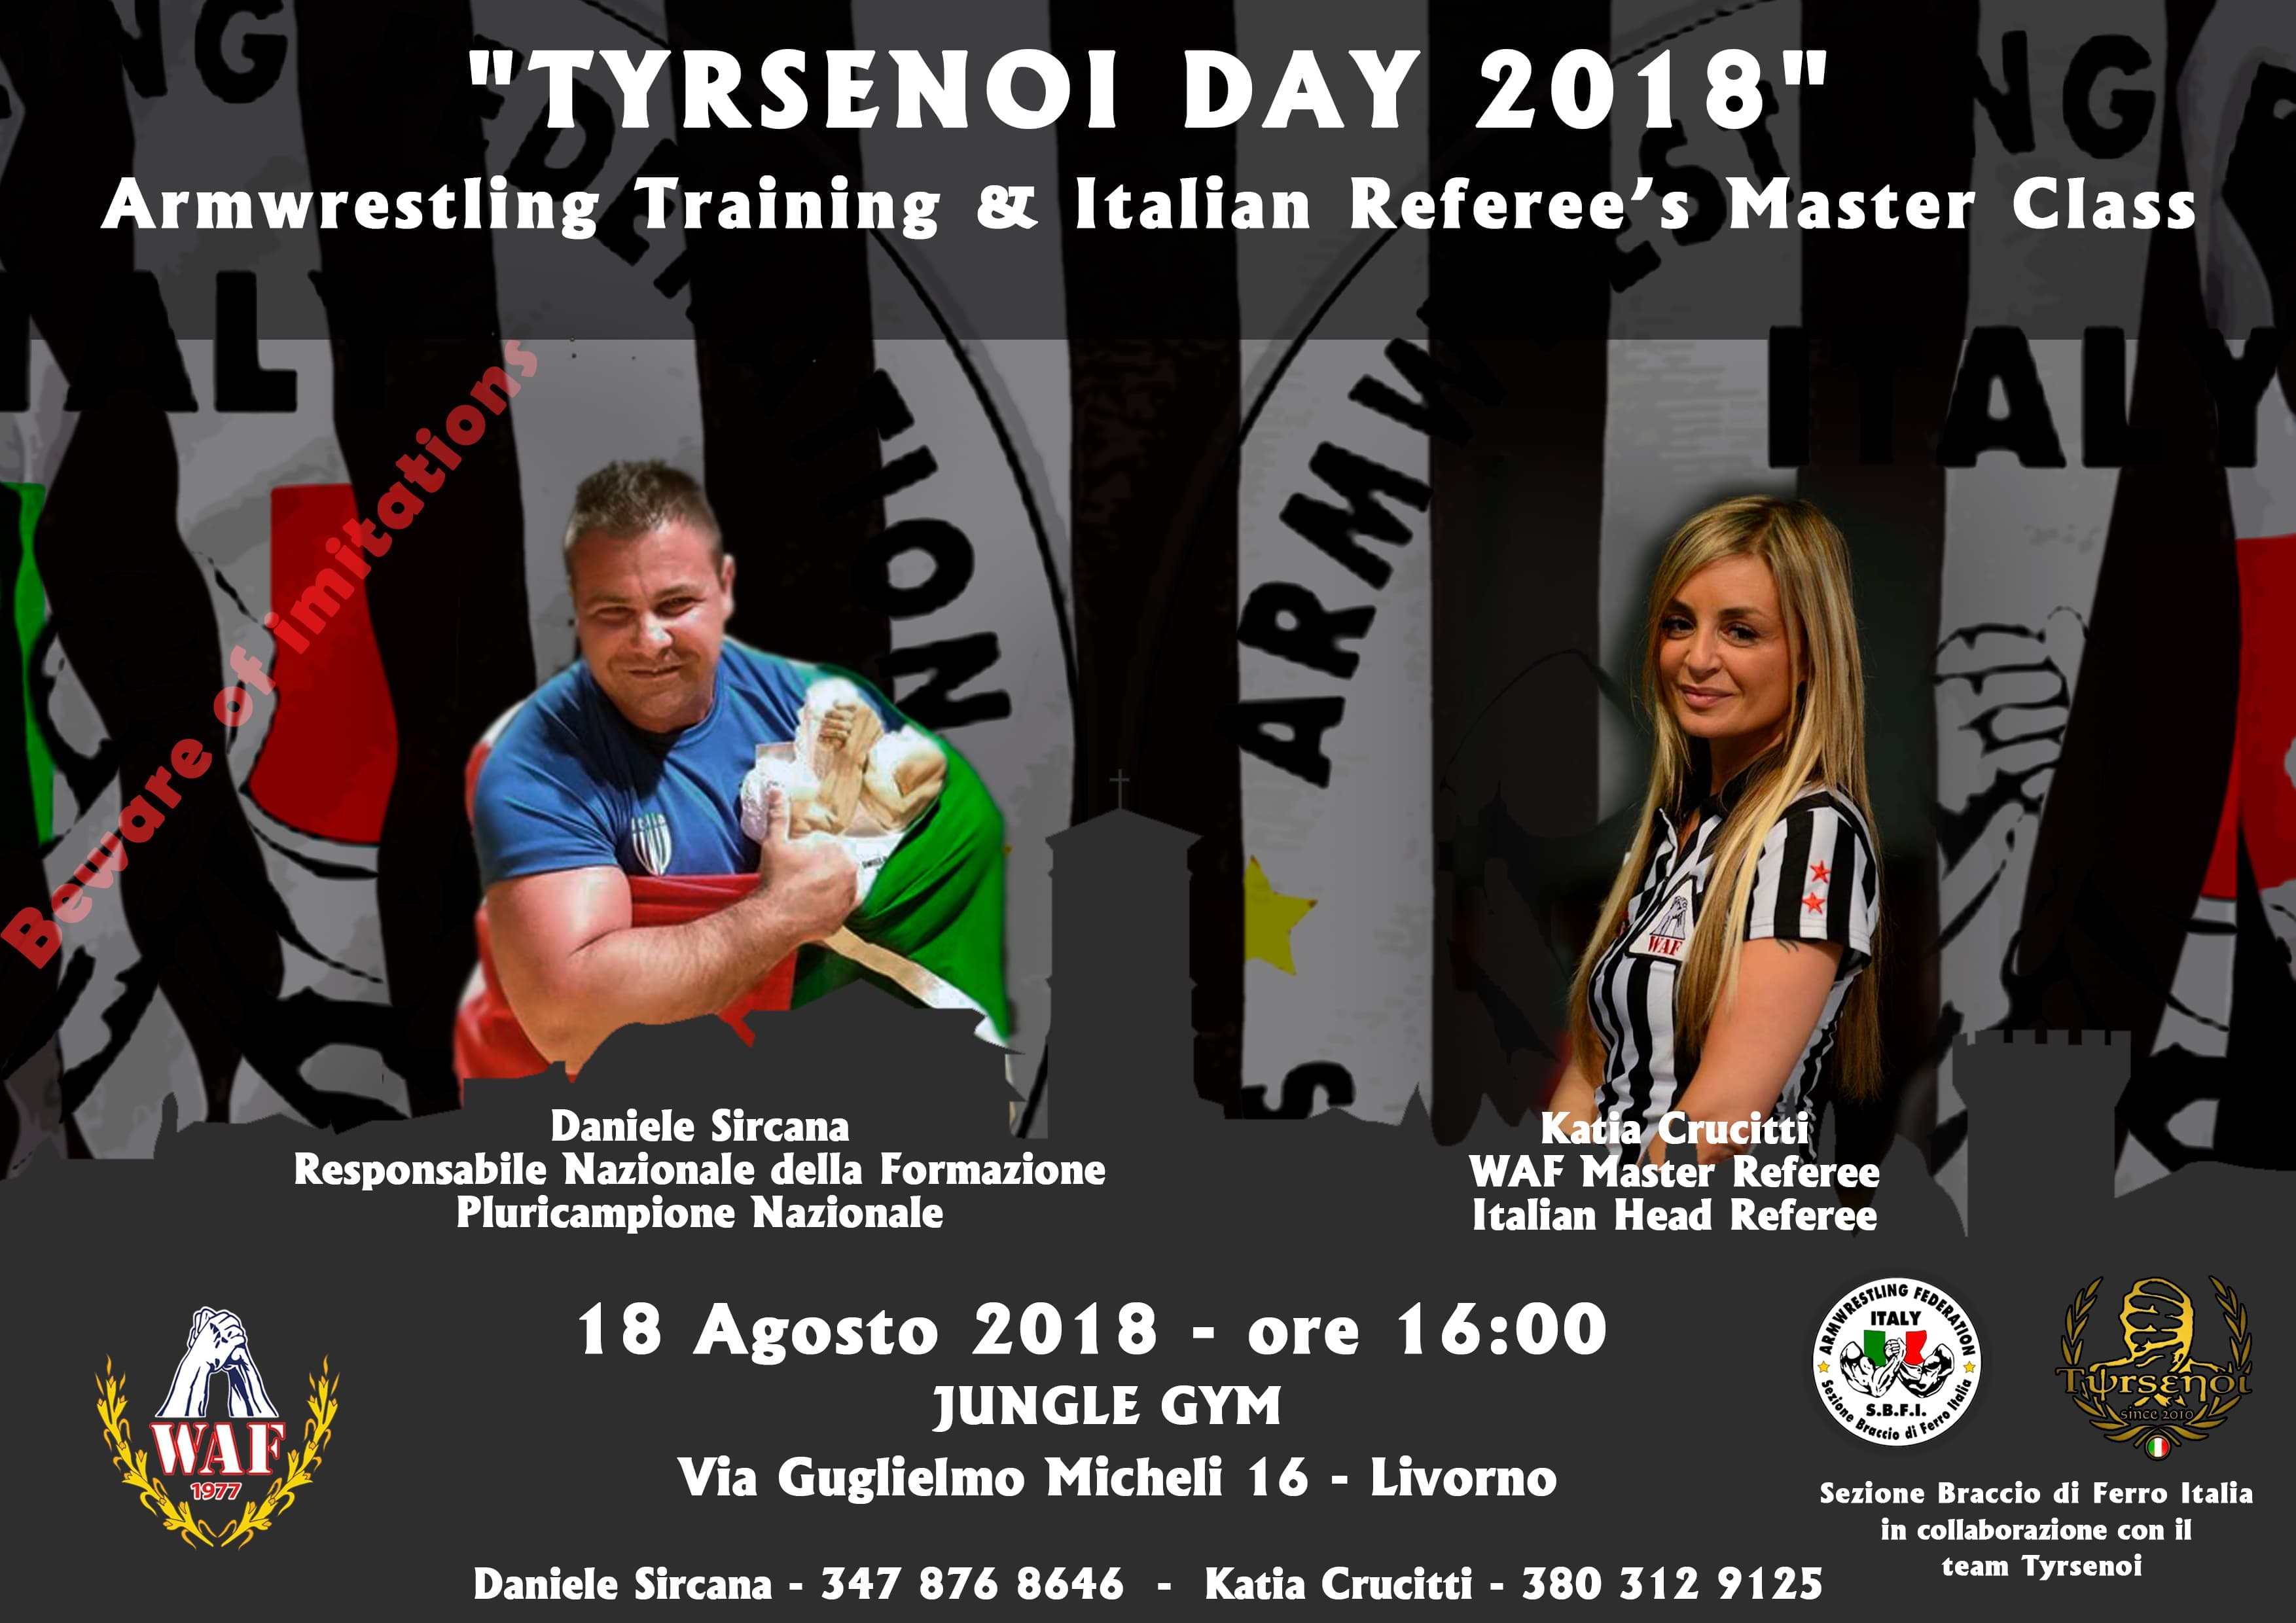 Tyrsenoi Day 2018